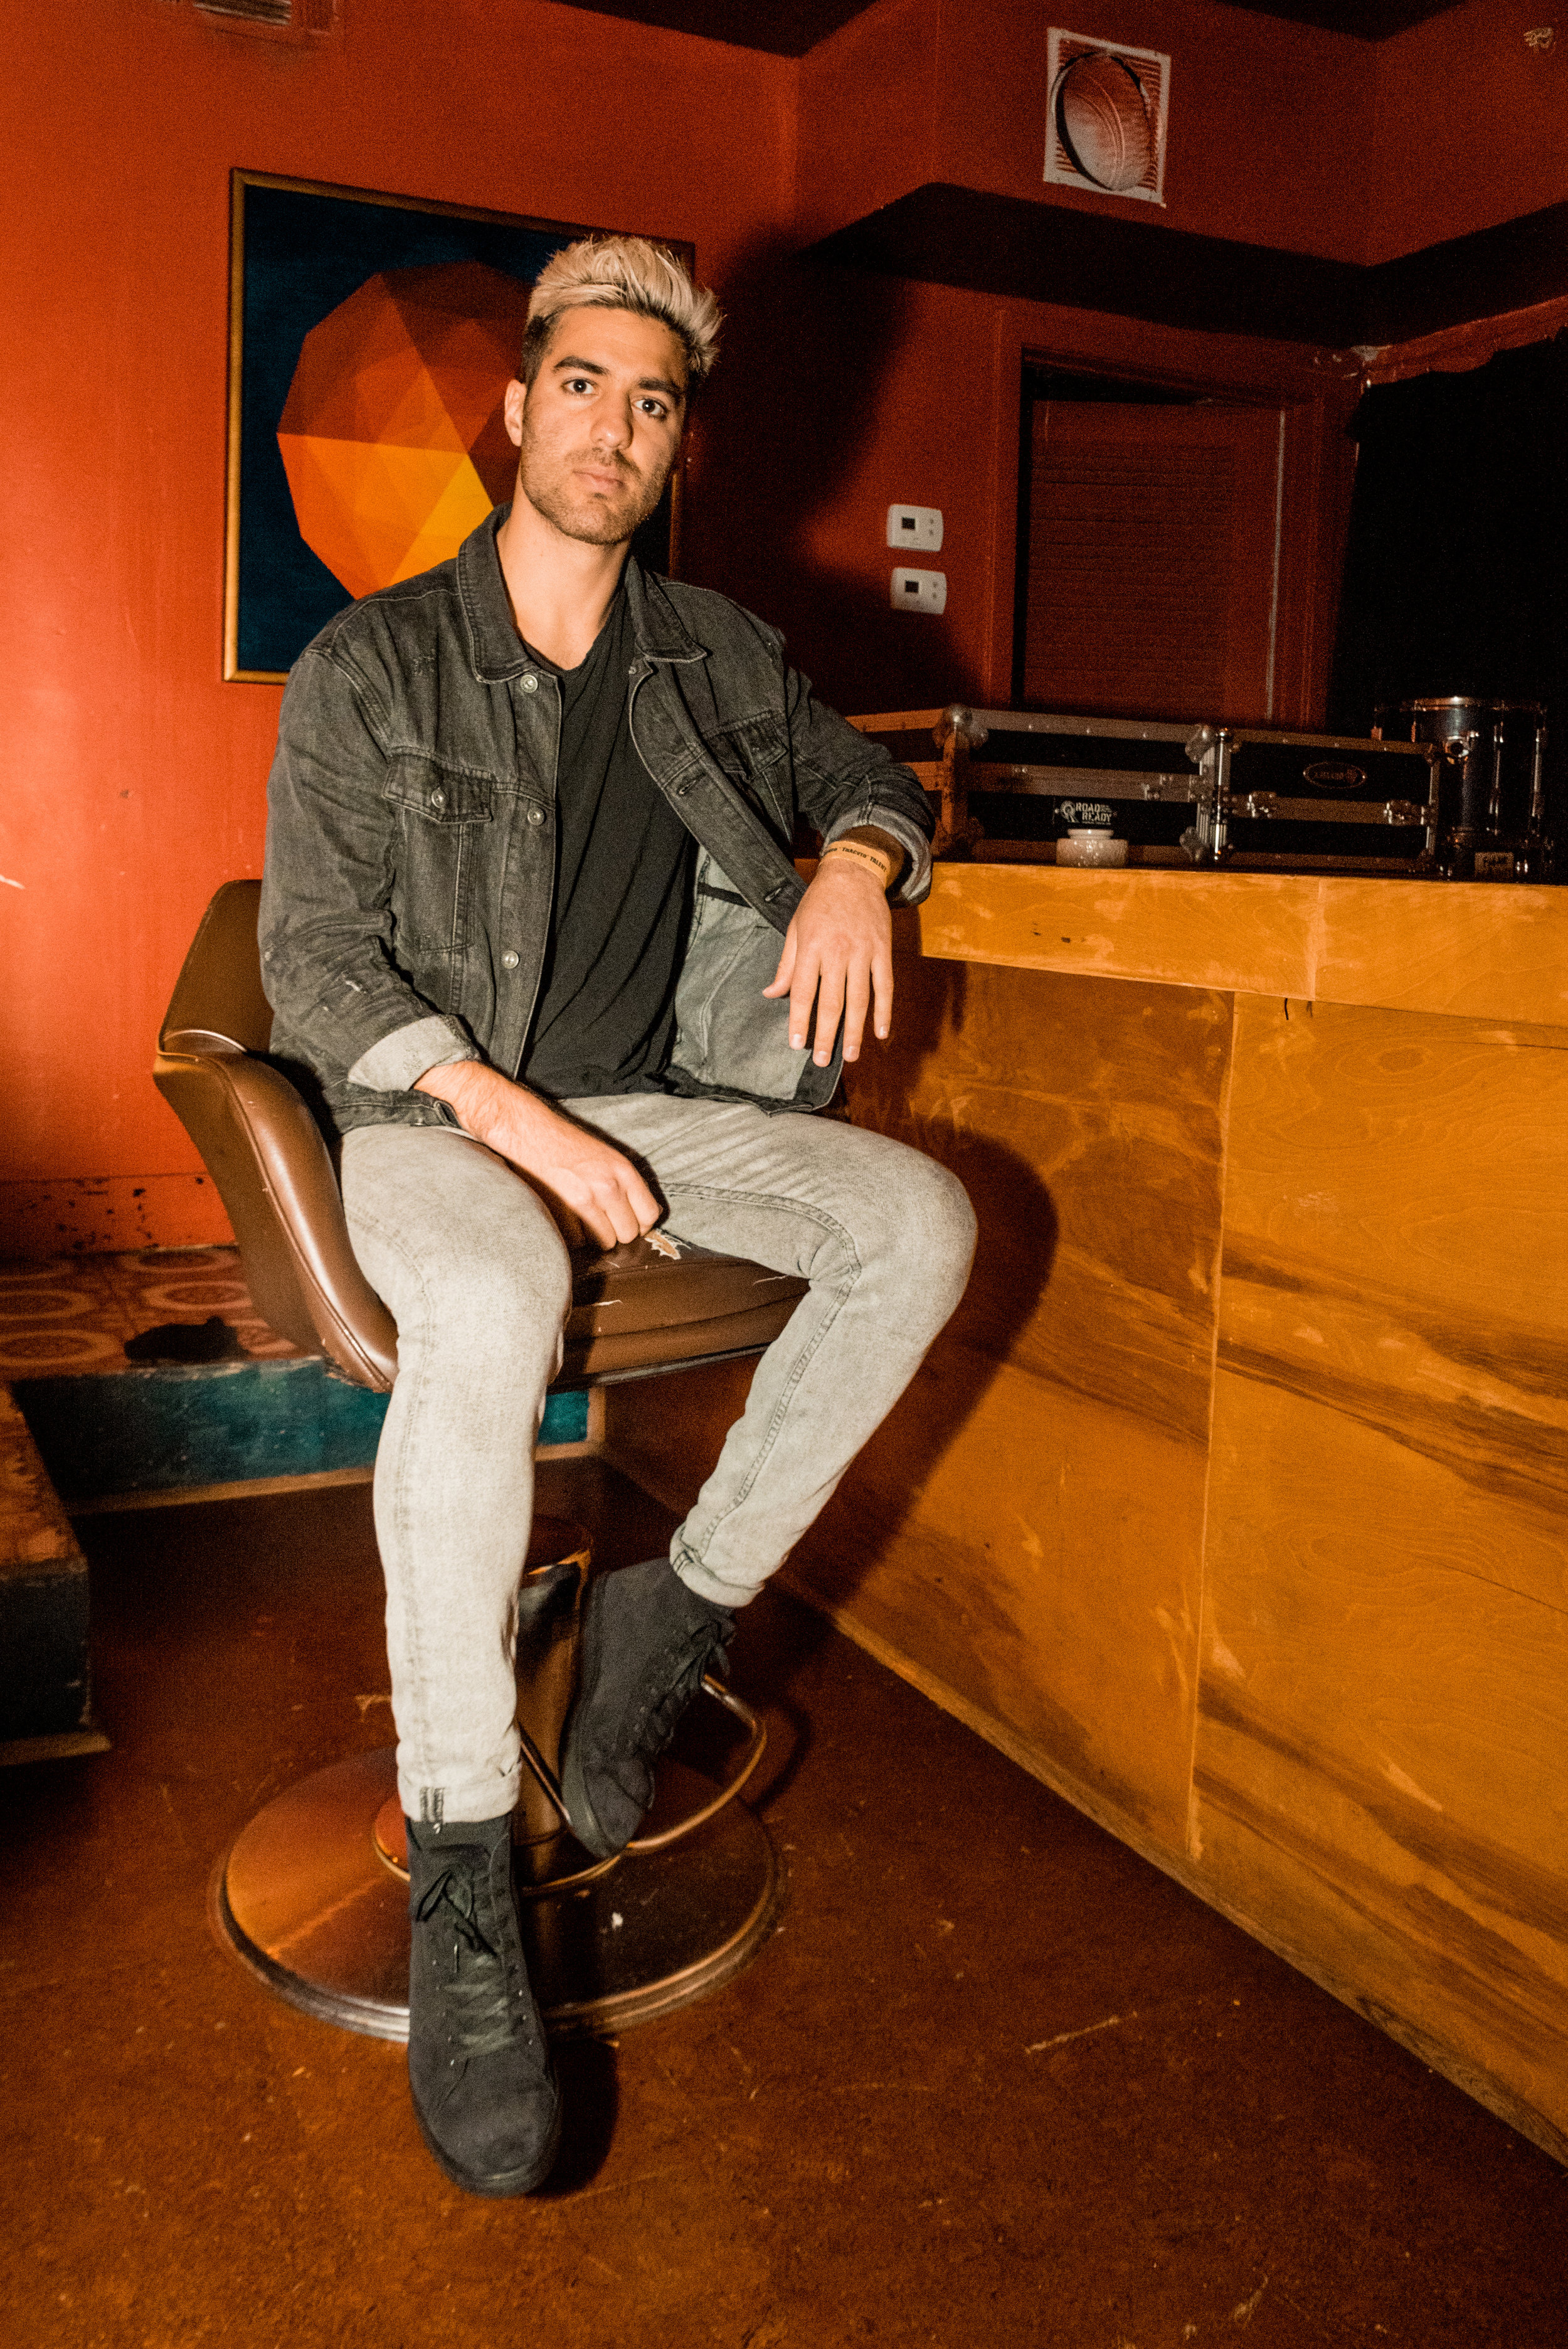 """ayokay - """"If you suppress your passions, that's not living. Just start taking steps towards what you want and eventually a path will appear for itself.""""Full Interview + Photos for Capitol Sound DC here."""